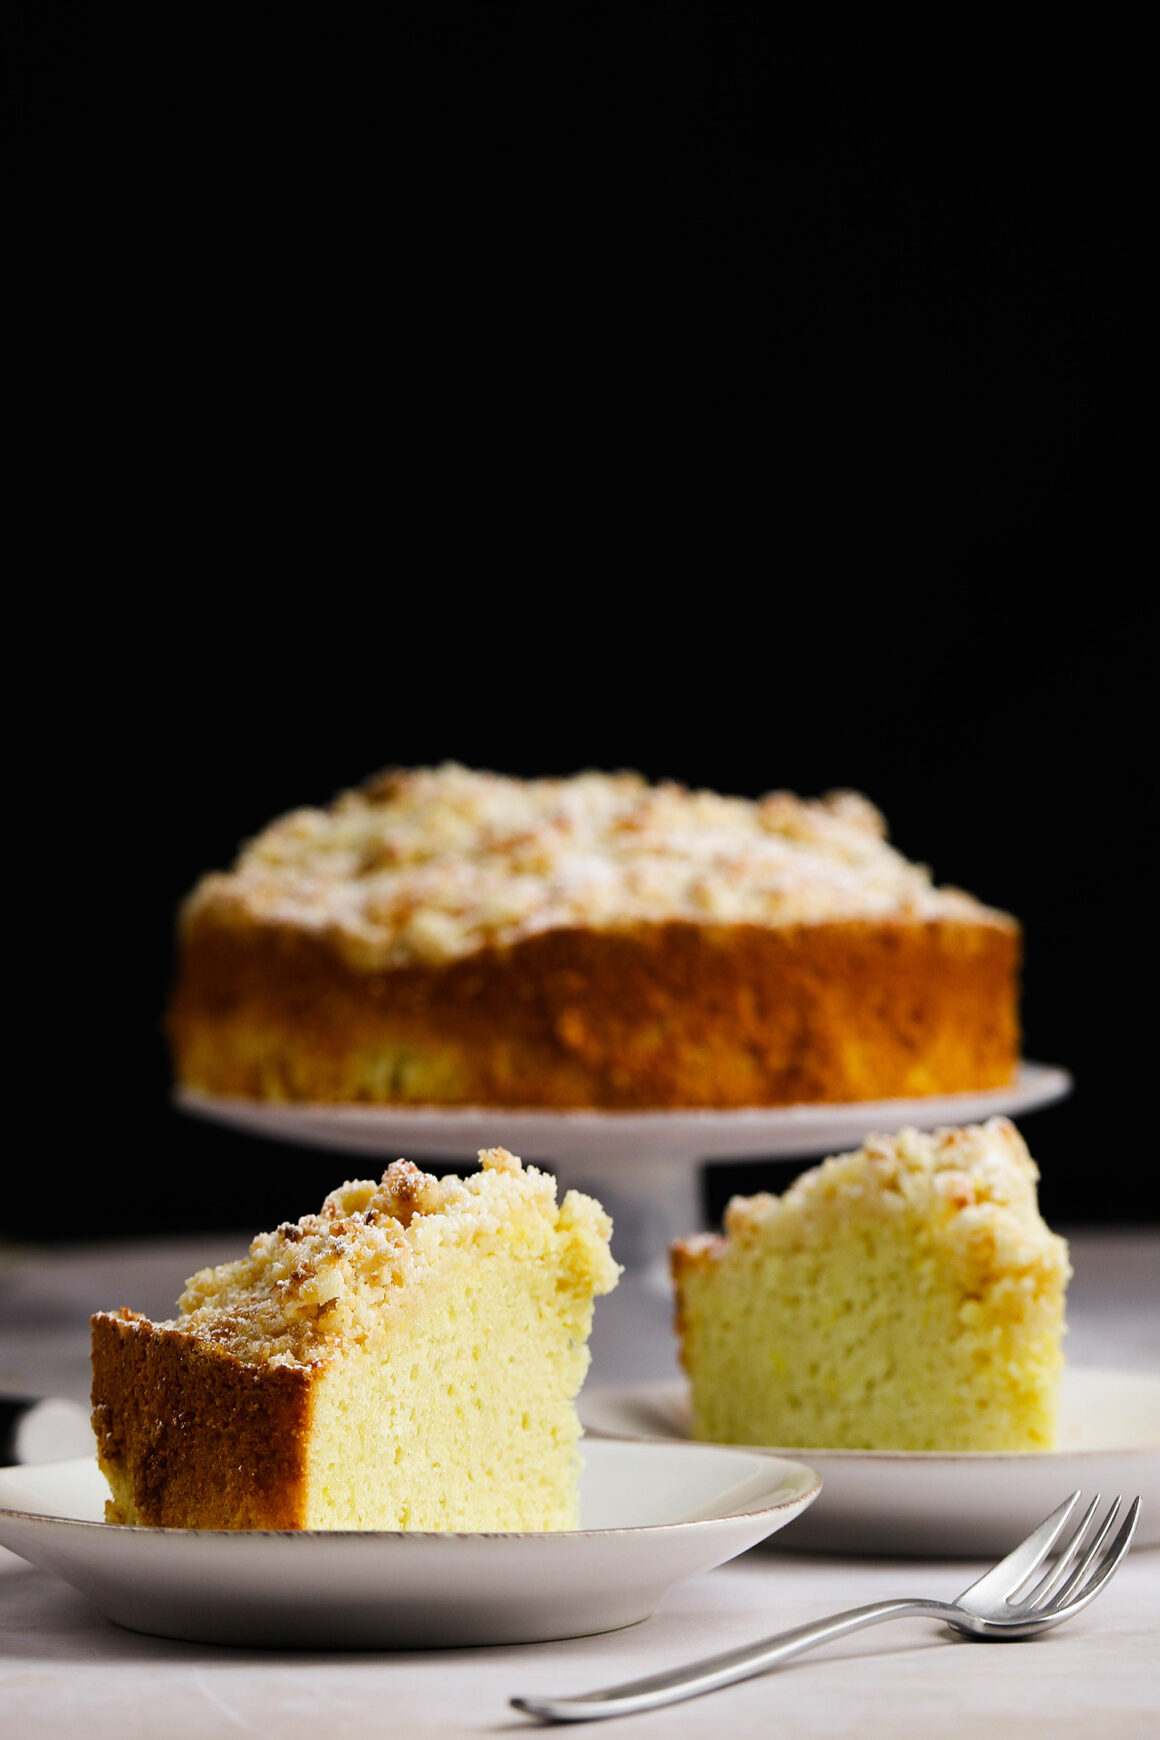 plated slices of lemon cream crumble cake